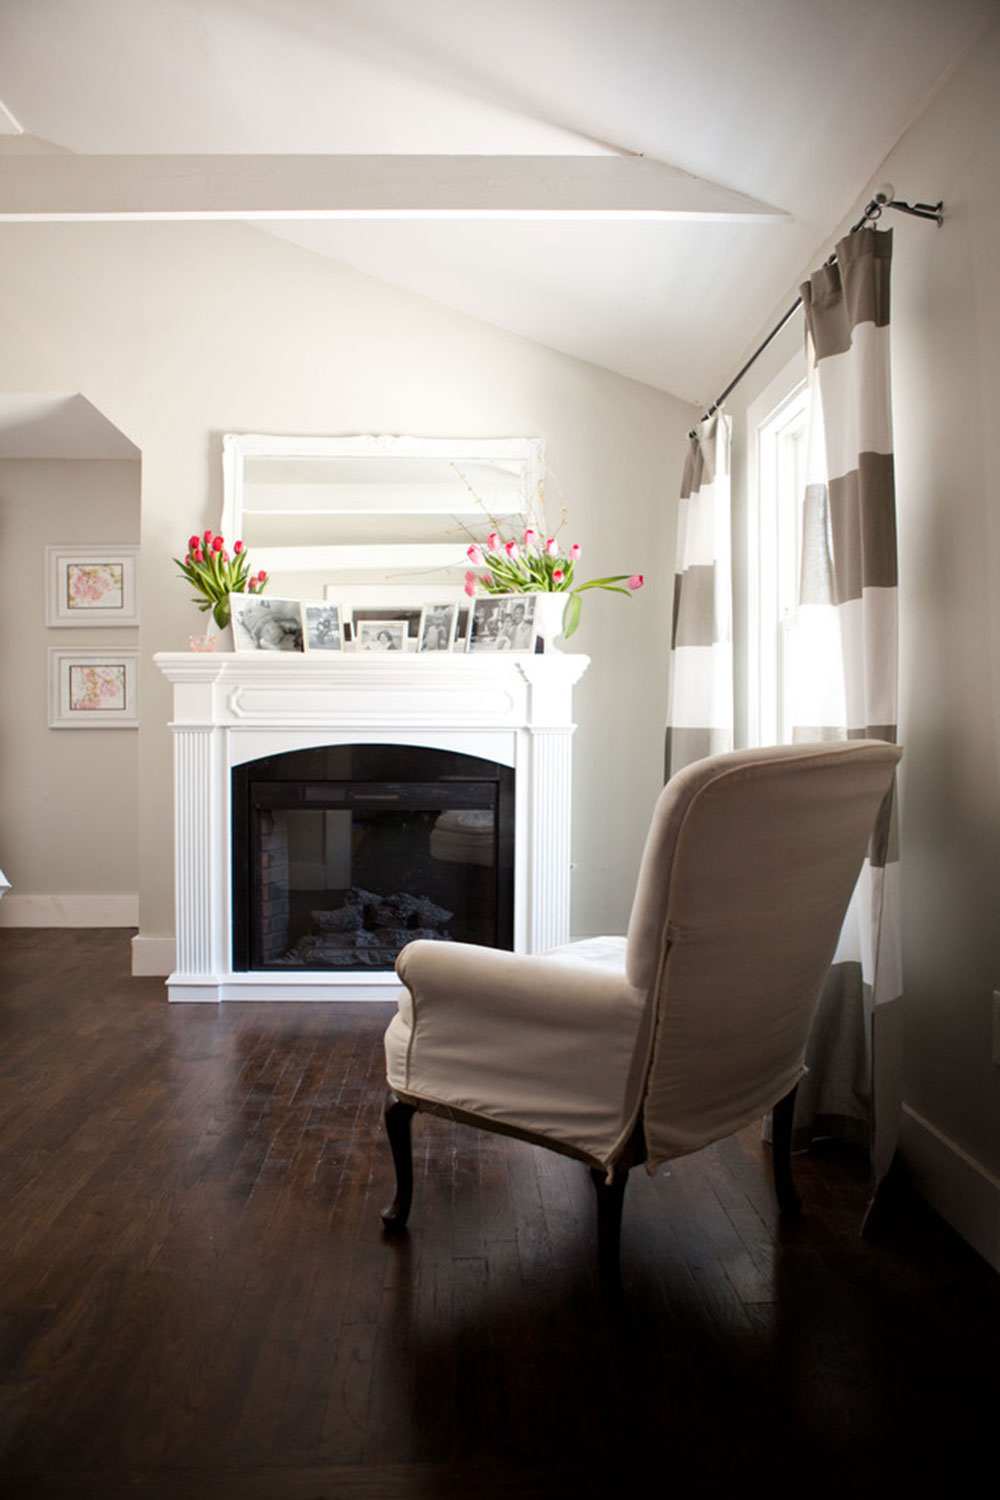 Fireplace-mantling-decoration-ideas-for-a-cozy-home10 fireplace mantling-decoration-ideas for a cozy home